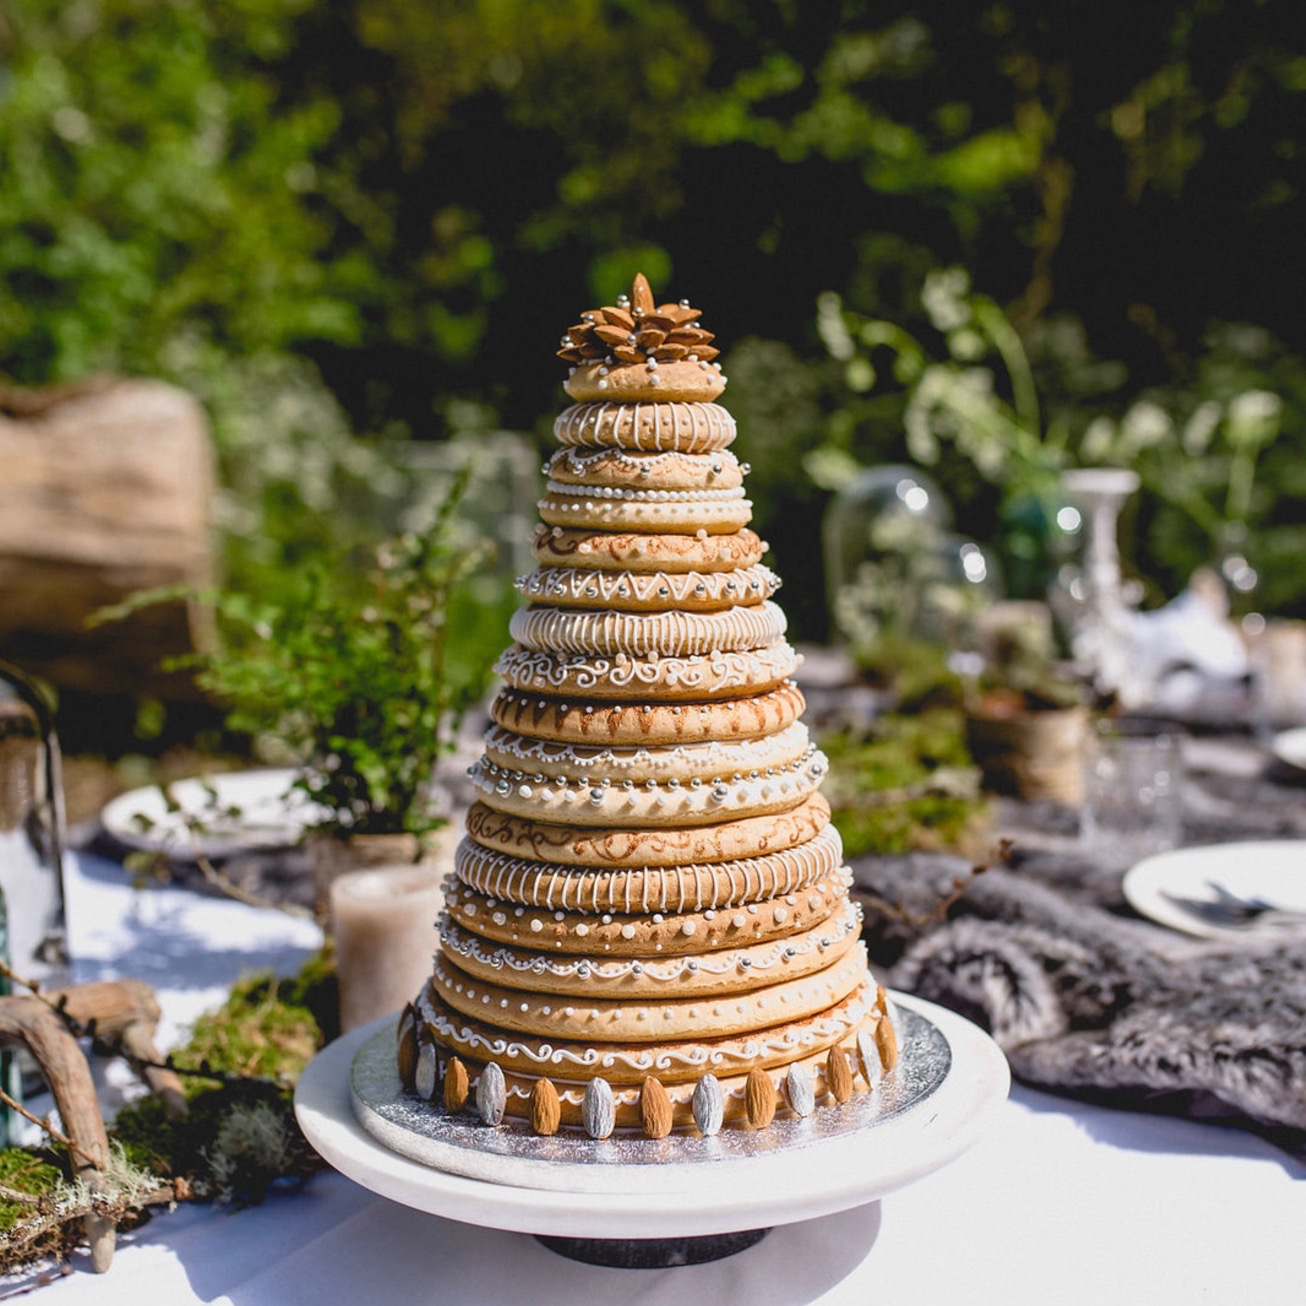 TRADITIONAL NORWEGIAN KRANSEKAKE CENTREPIECE  Created for a Norse-themed photoshoot. (photo credit:  Maria Assia )